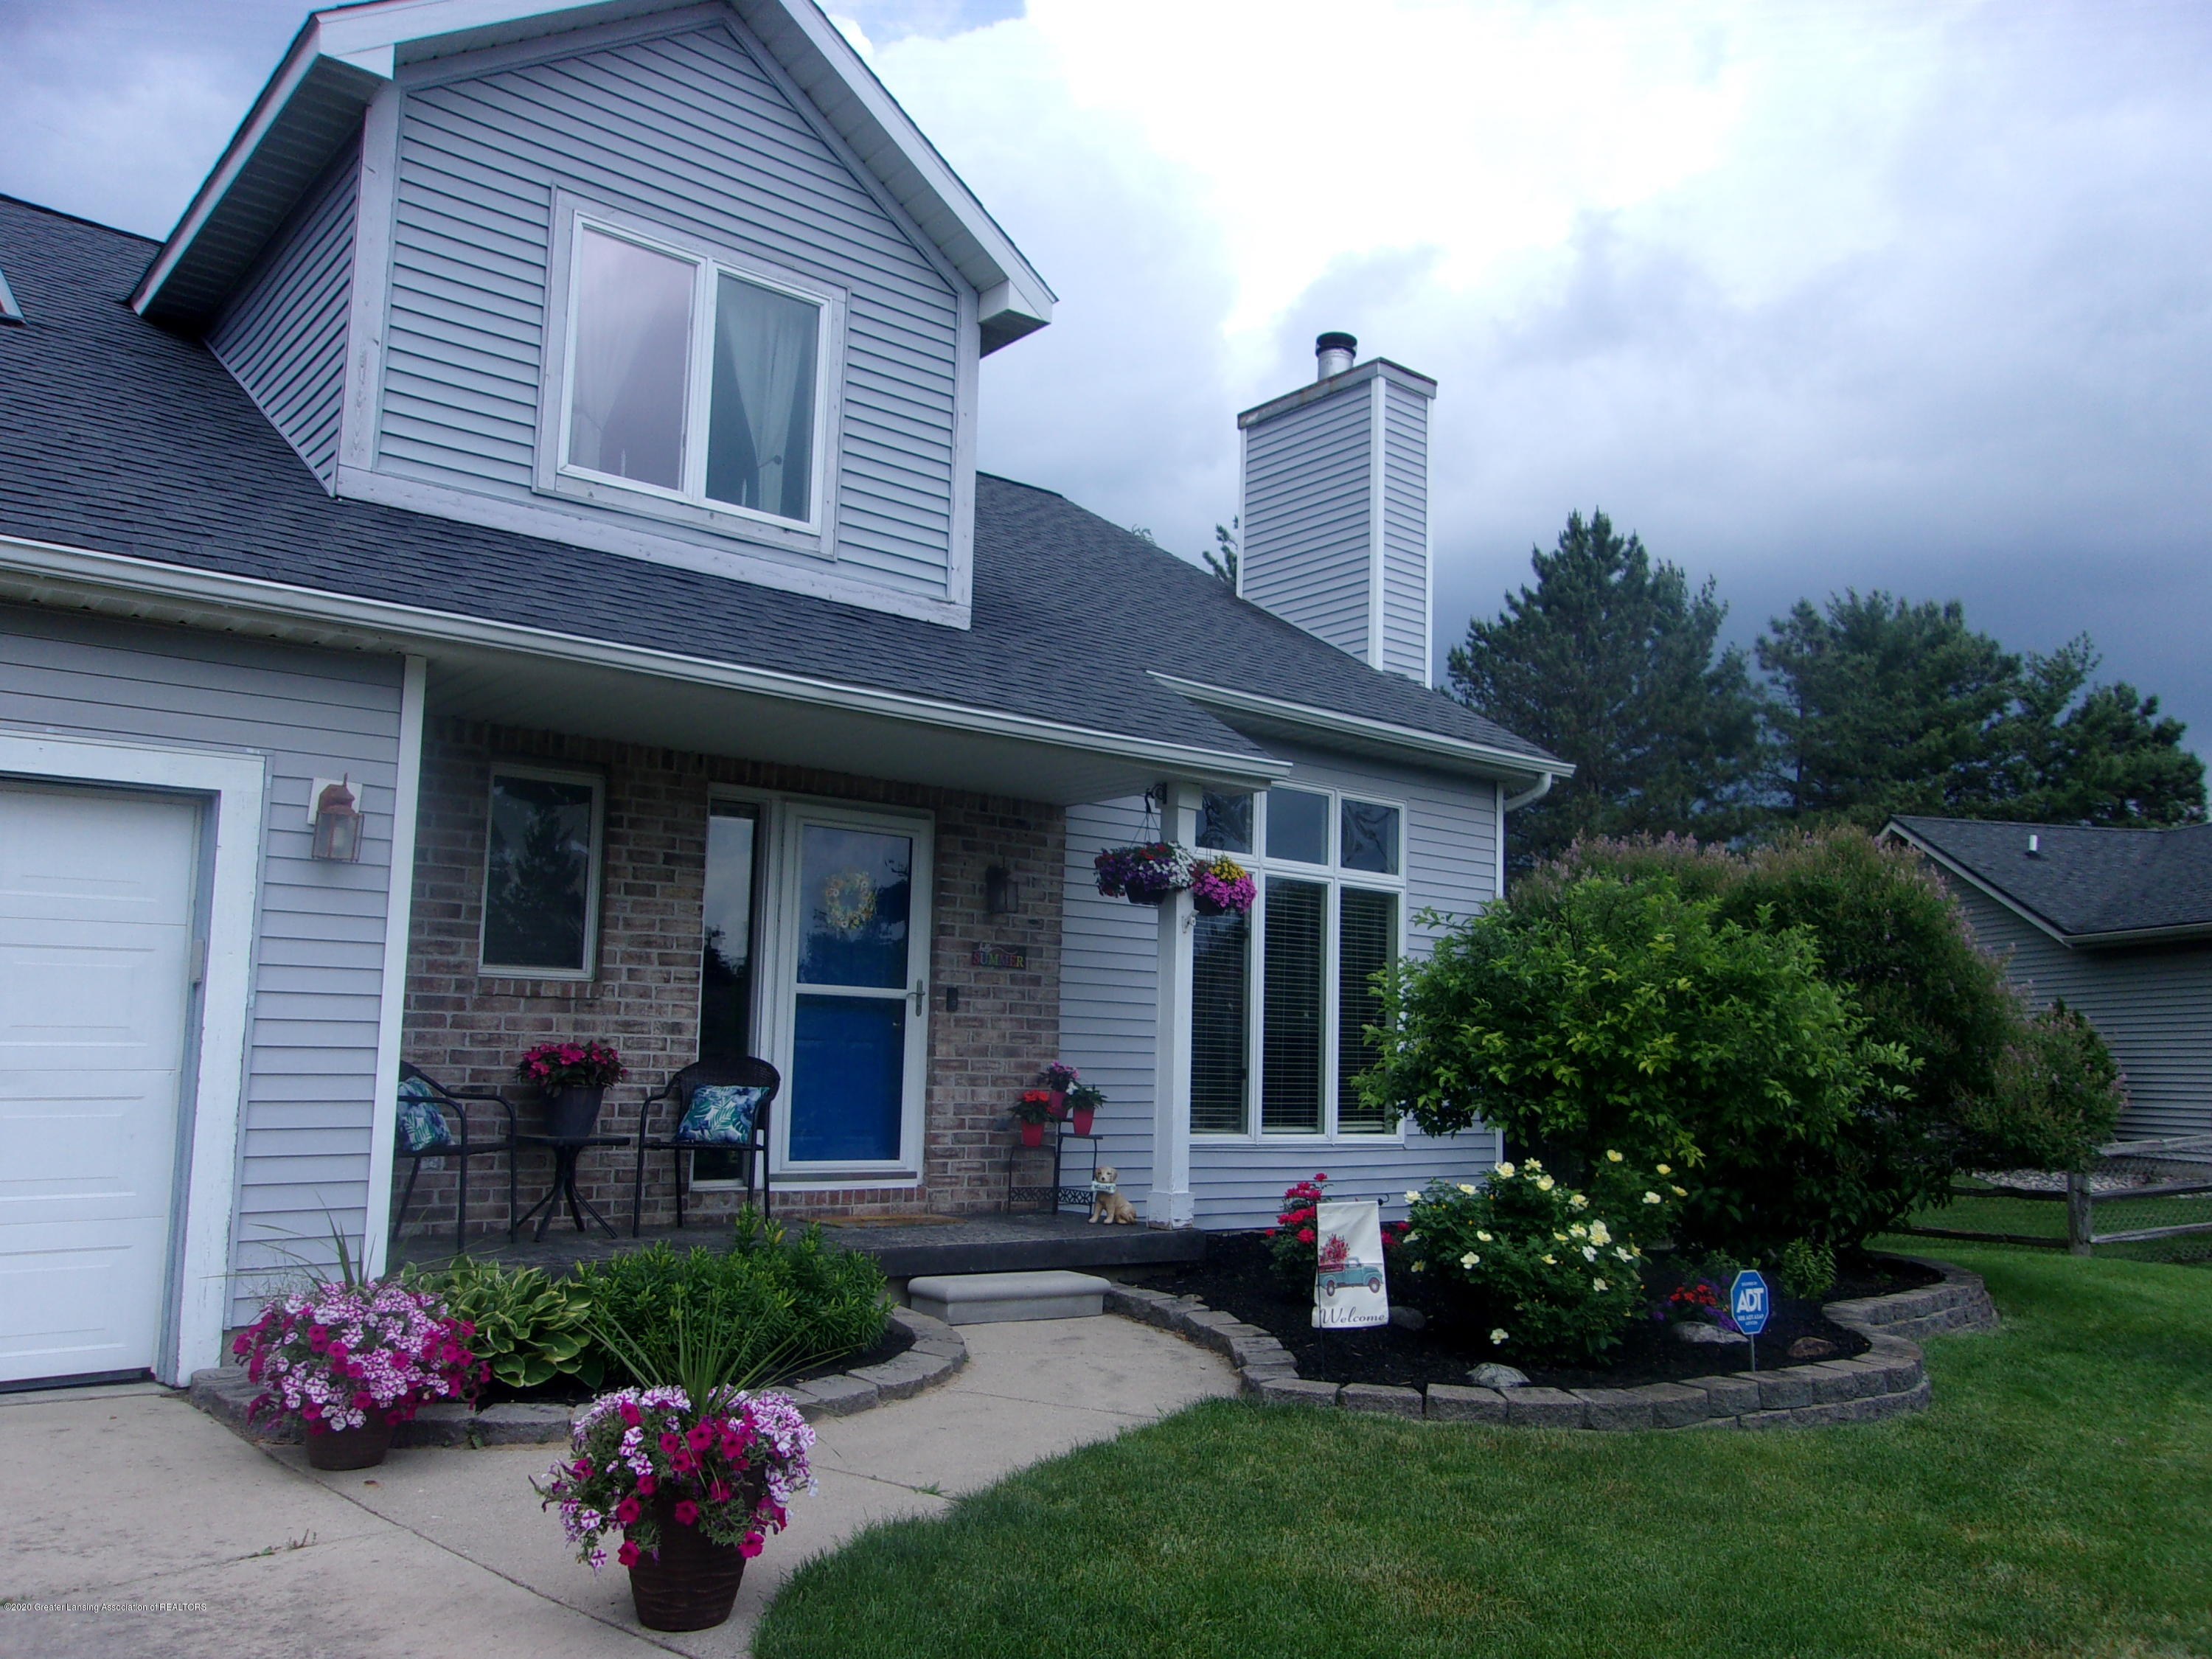 3991 Windy Heights Dr - 100_0978 - 2